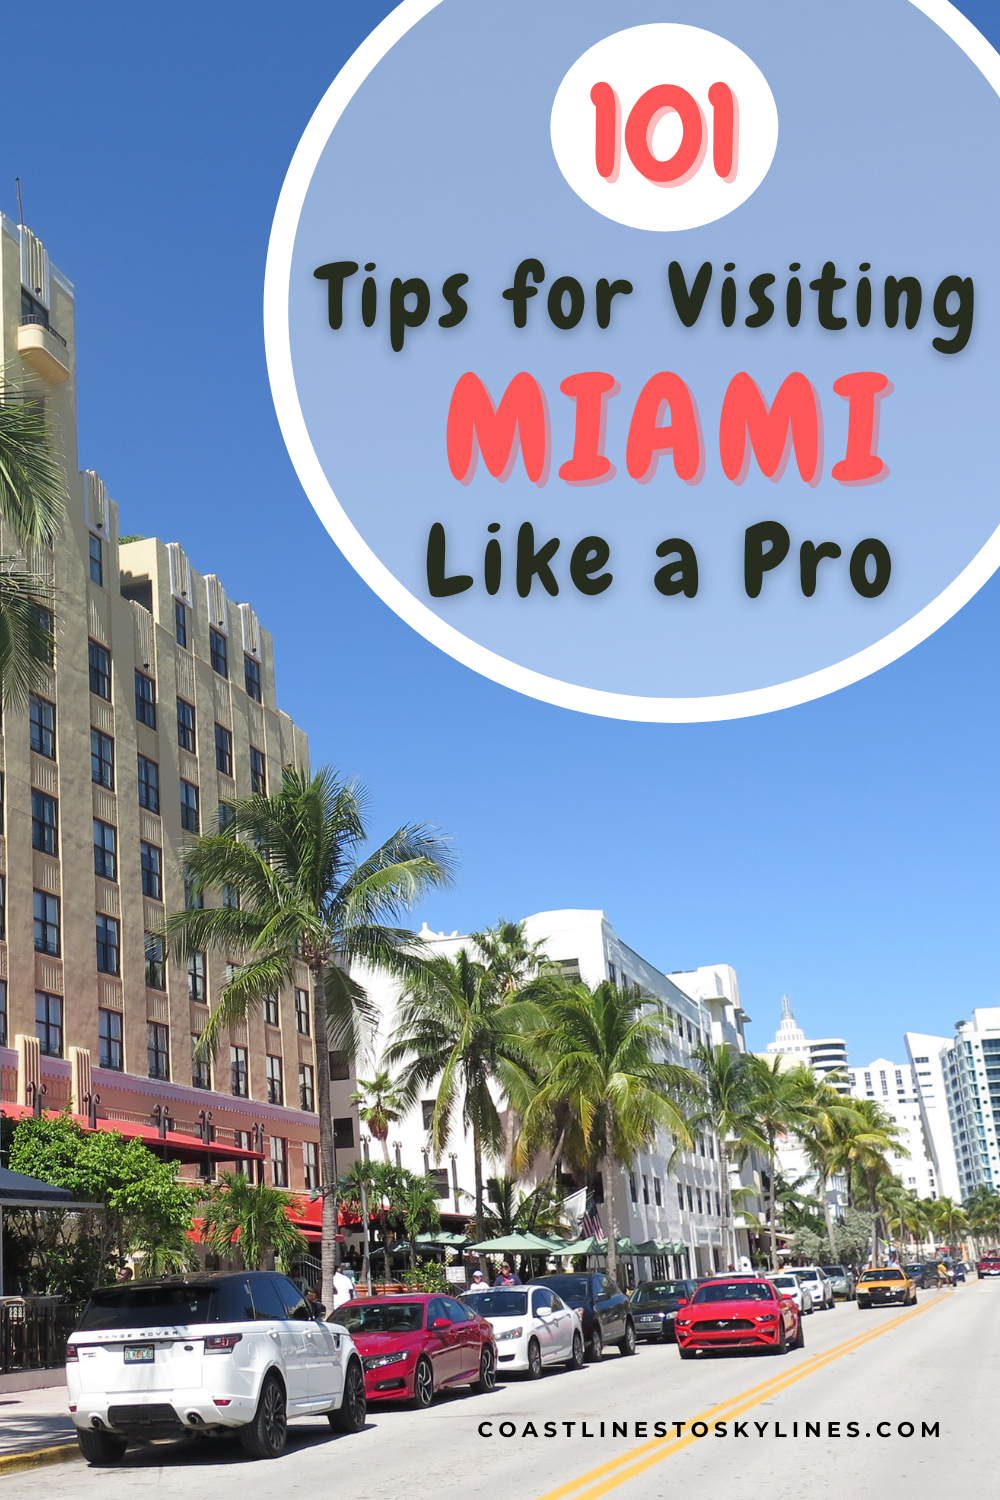 101 Things To Do In Miami Your Ultimate Miami Bucket List Coastlines To Skylines Miami Travel Guide Miami Travel Miami Bucket List